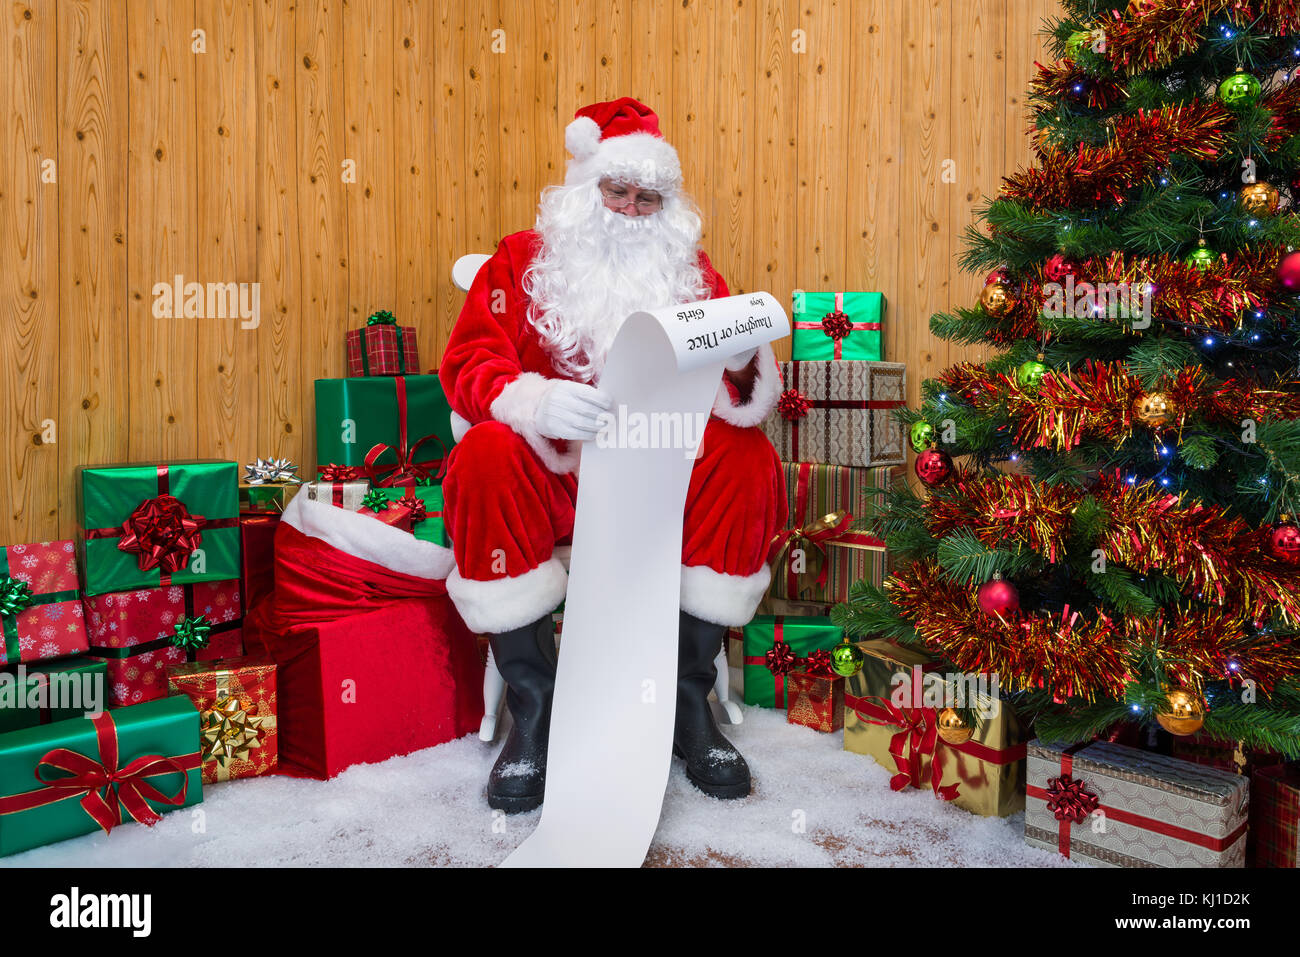 Santa Claus in his grotto surrounded by a Christmas tree with presents and gift wrapped boxes checking the Naughty - Stock Image